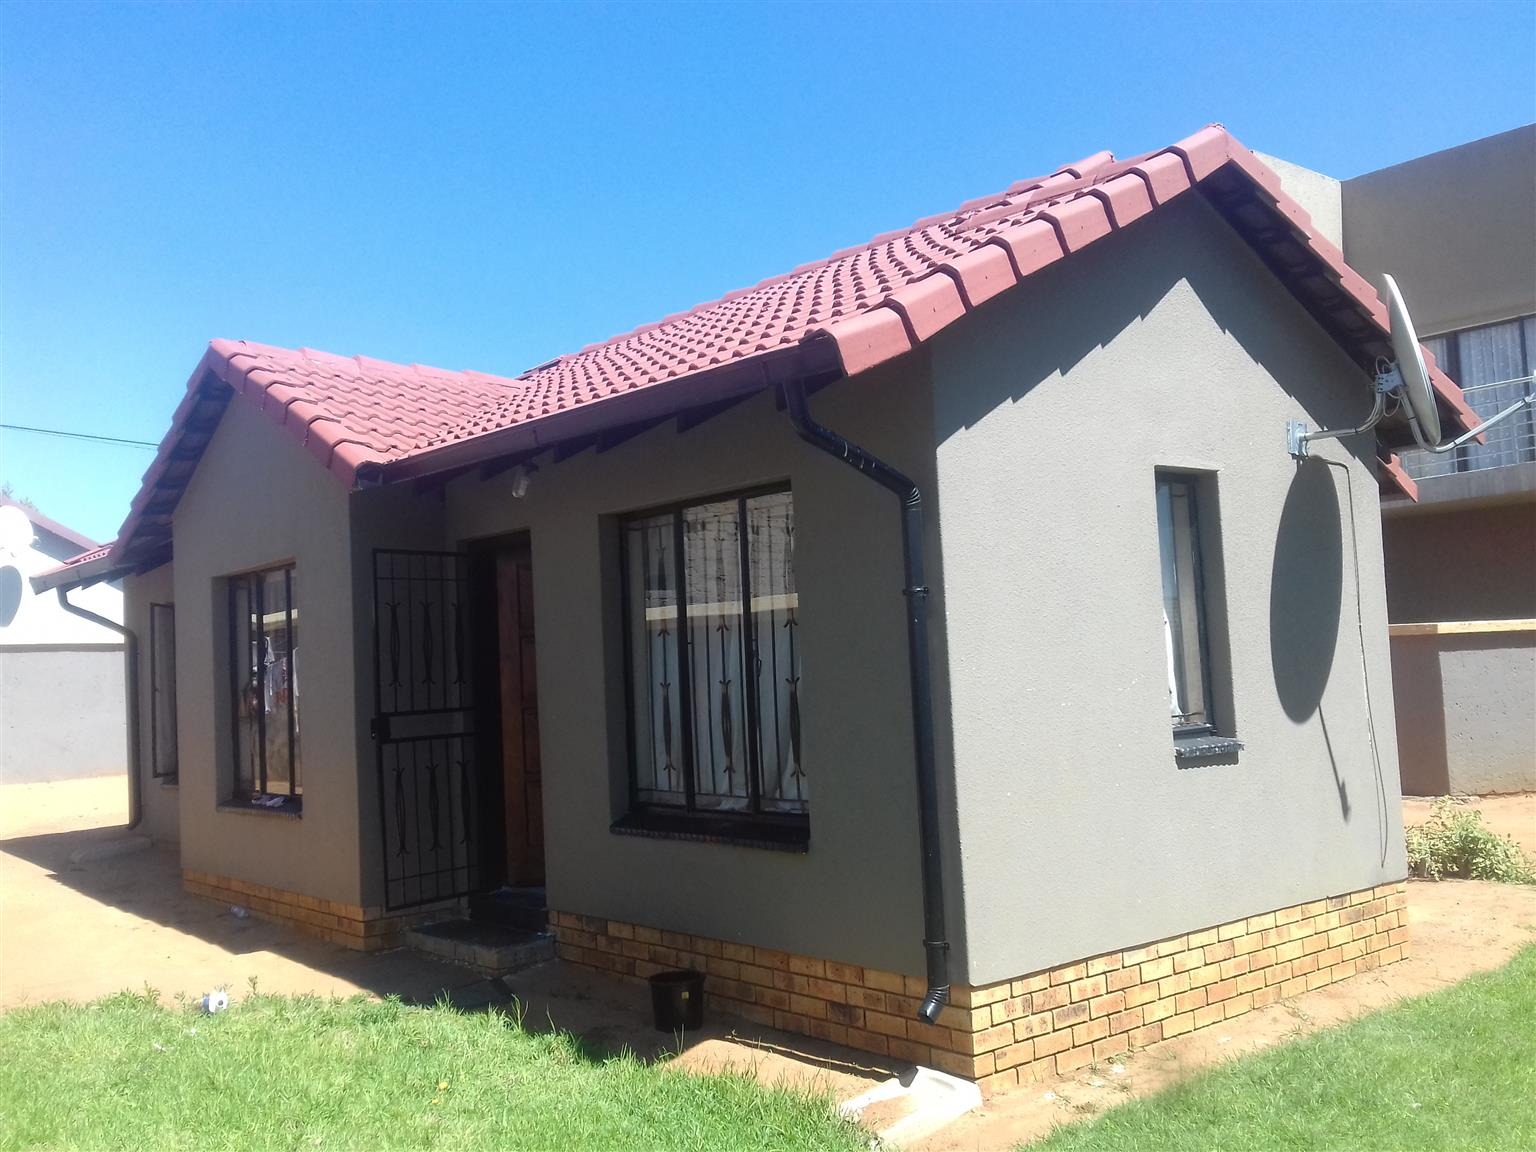 Phenomenal 2 Bedroom House To Rent In Ormonde View Johannesburg Immediately Junk Mail Download Free Architecture Designs Ogrambritishbridgeorg